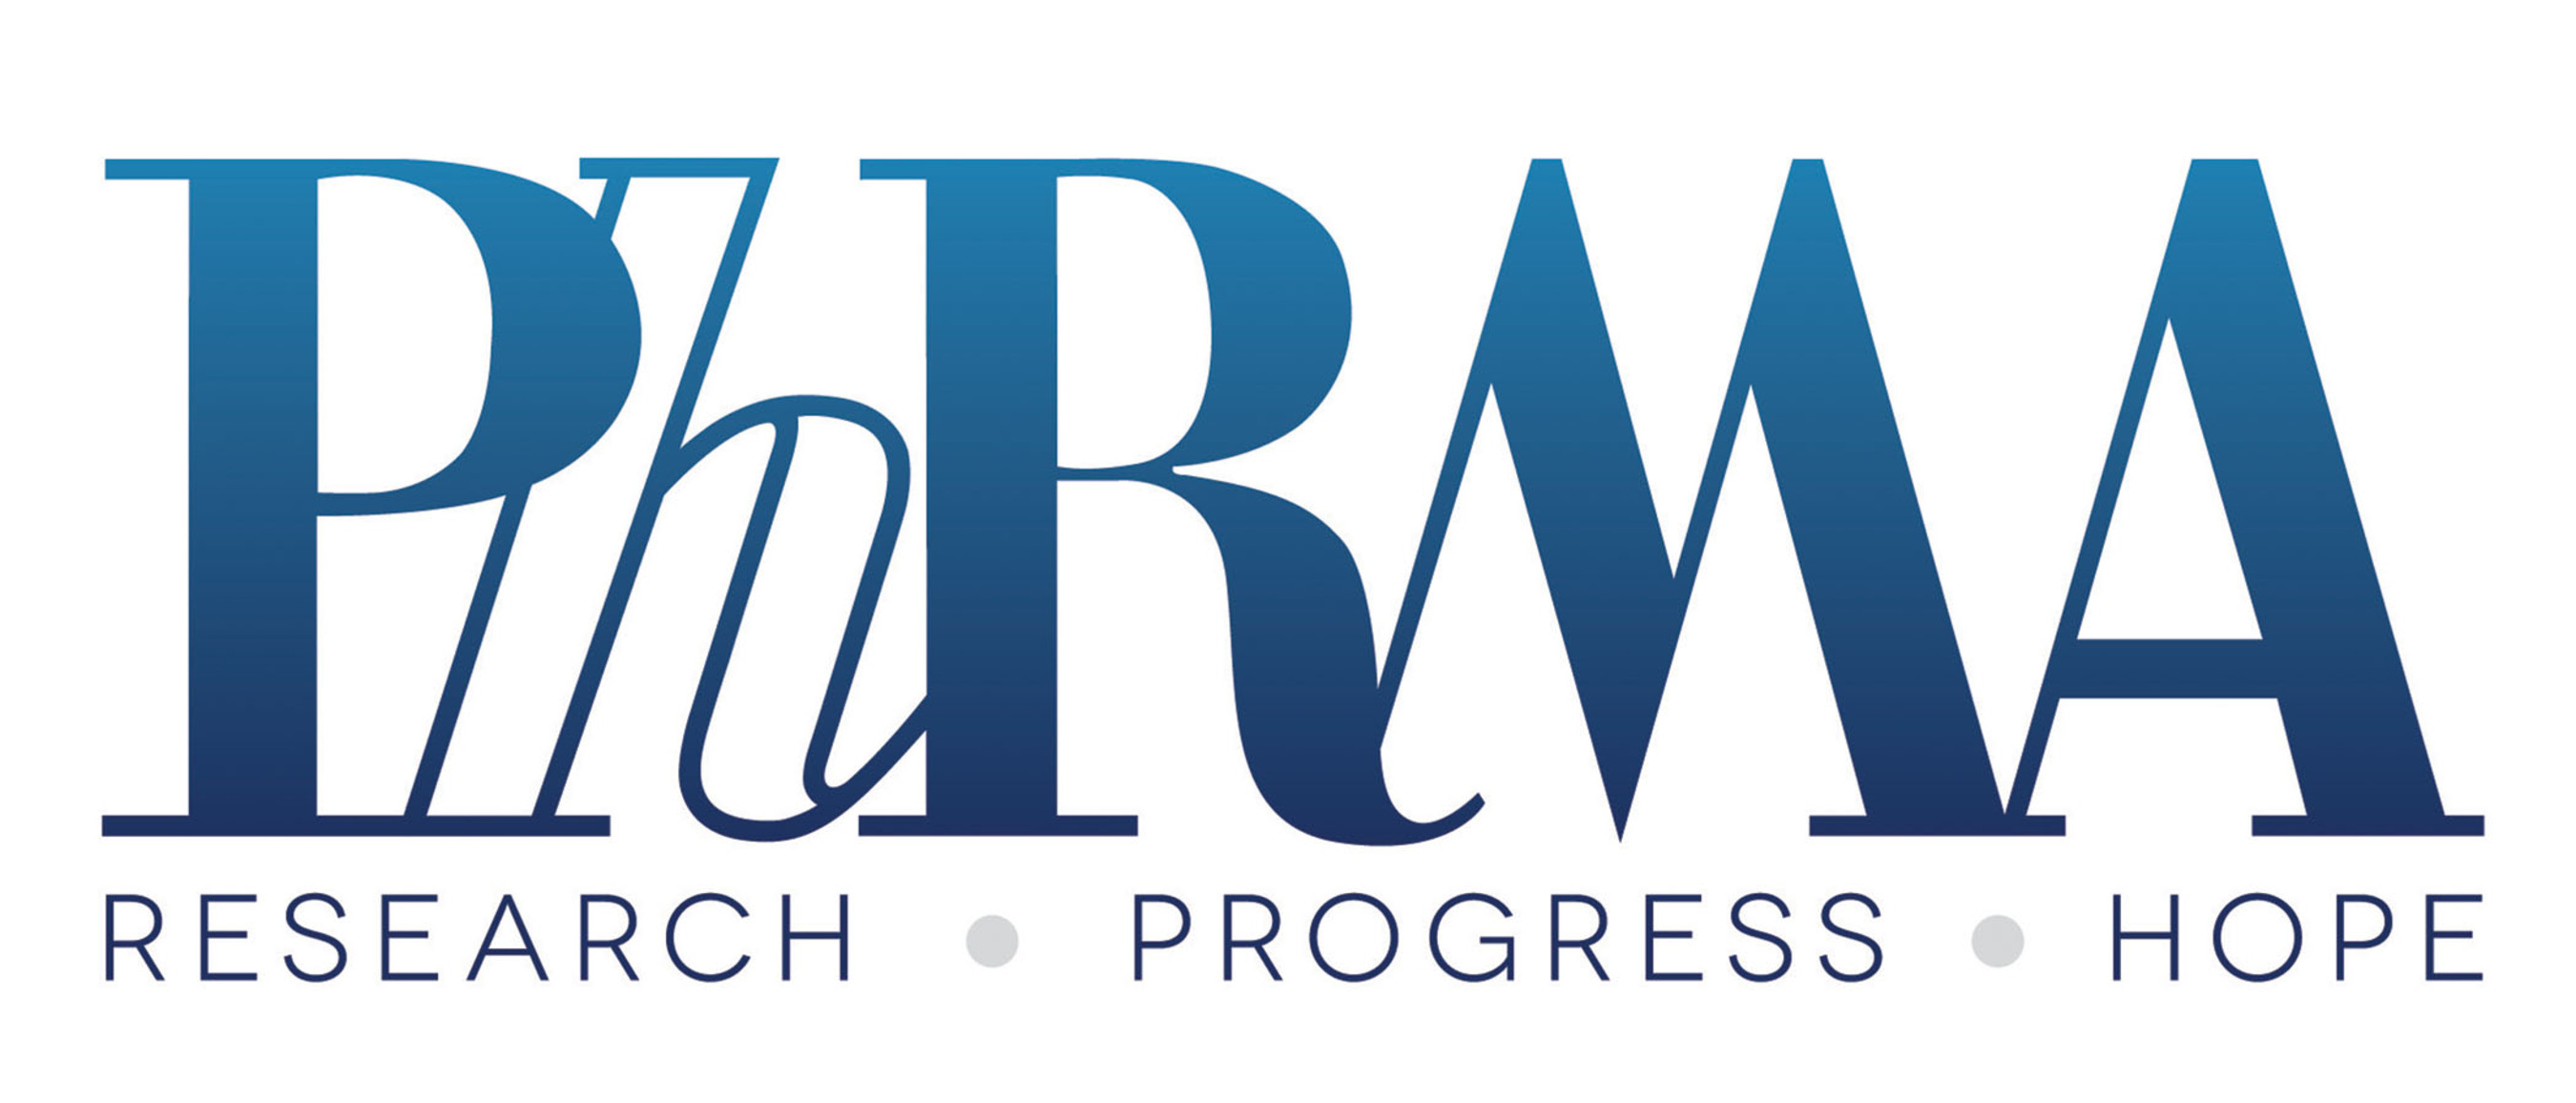 PhRMA. Research Progress Hope